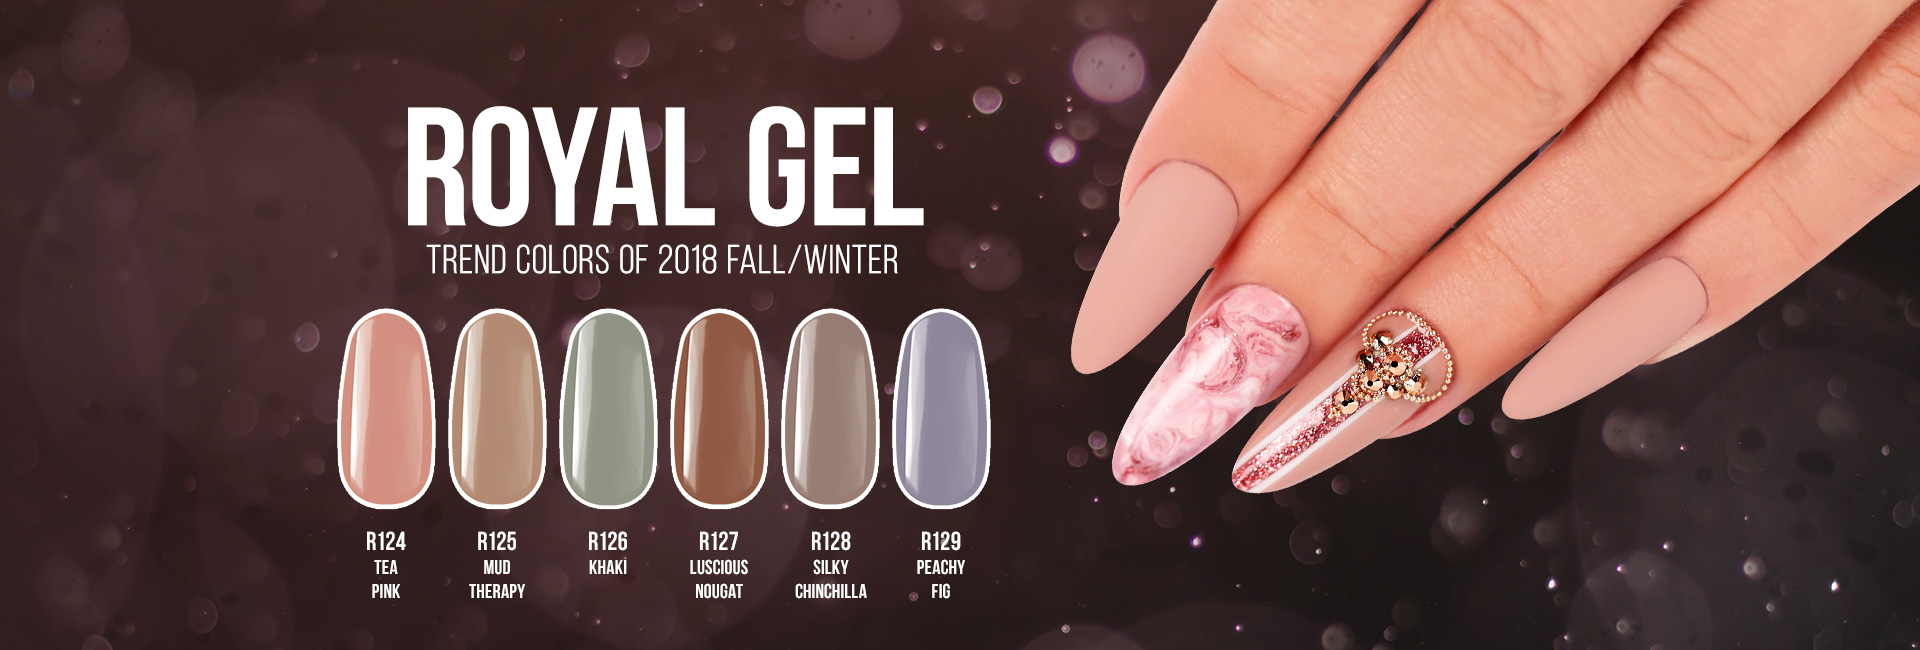 Royal Gel Trend Colors 2018 Autumn/Winter